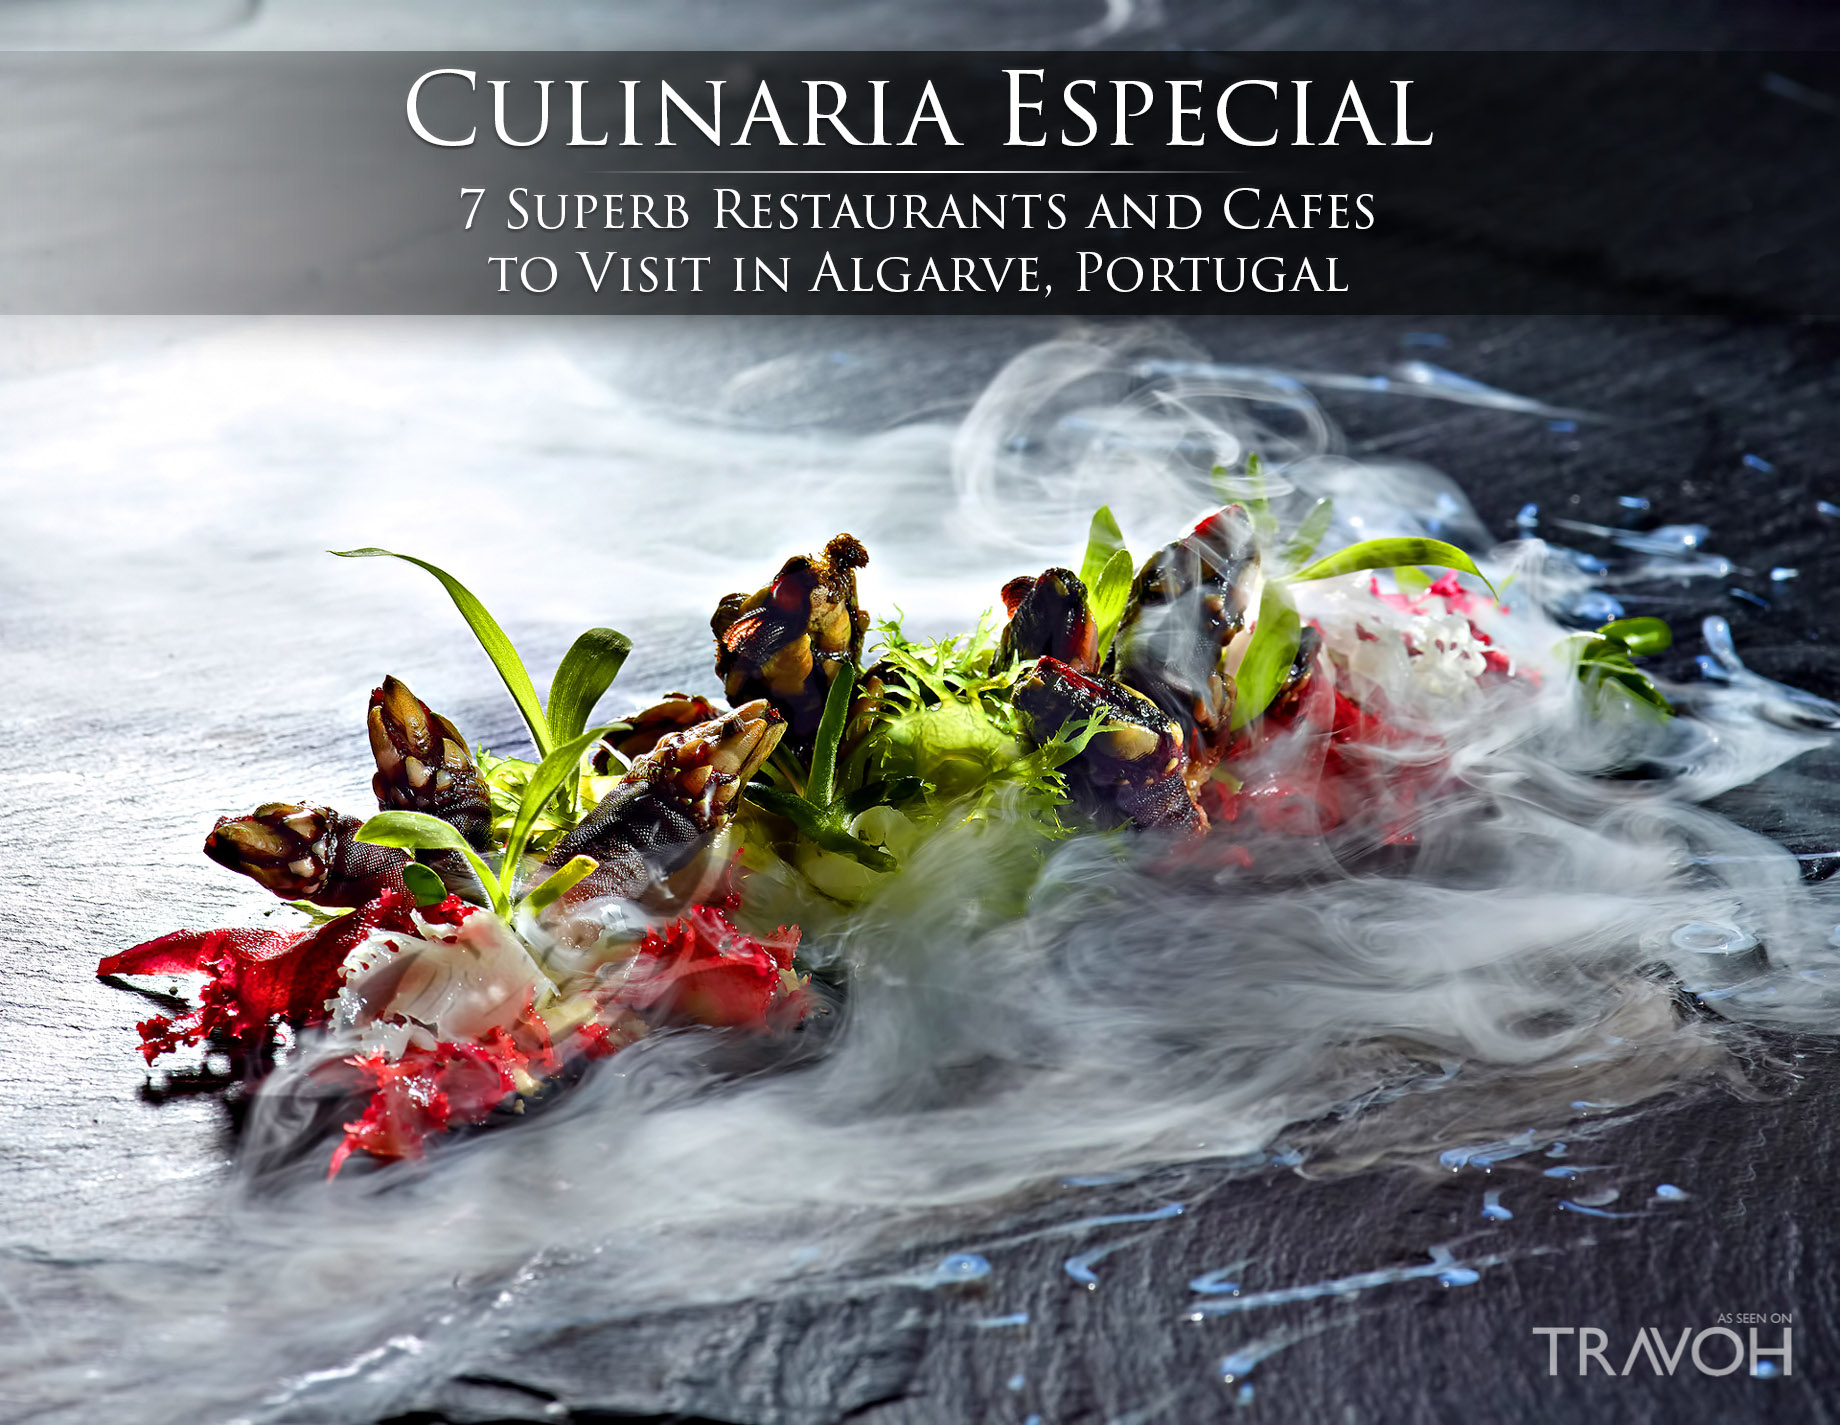 Culinaria Especial – 7 Superb Restaurants and Cafes to Visit in Algarve, Portugal